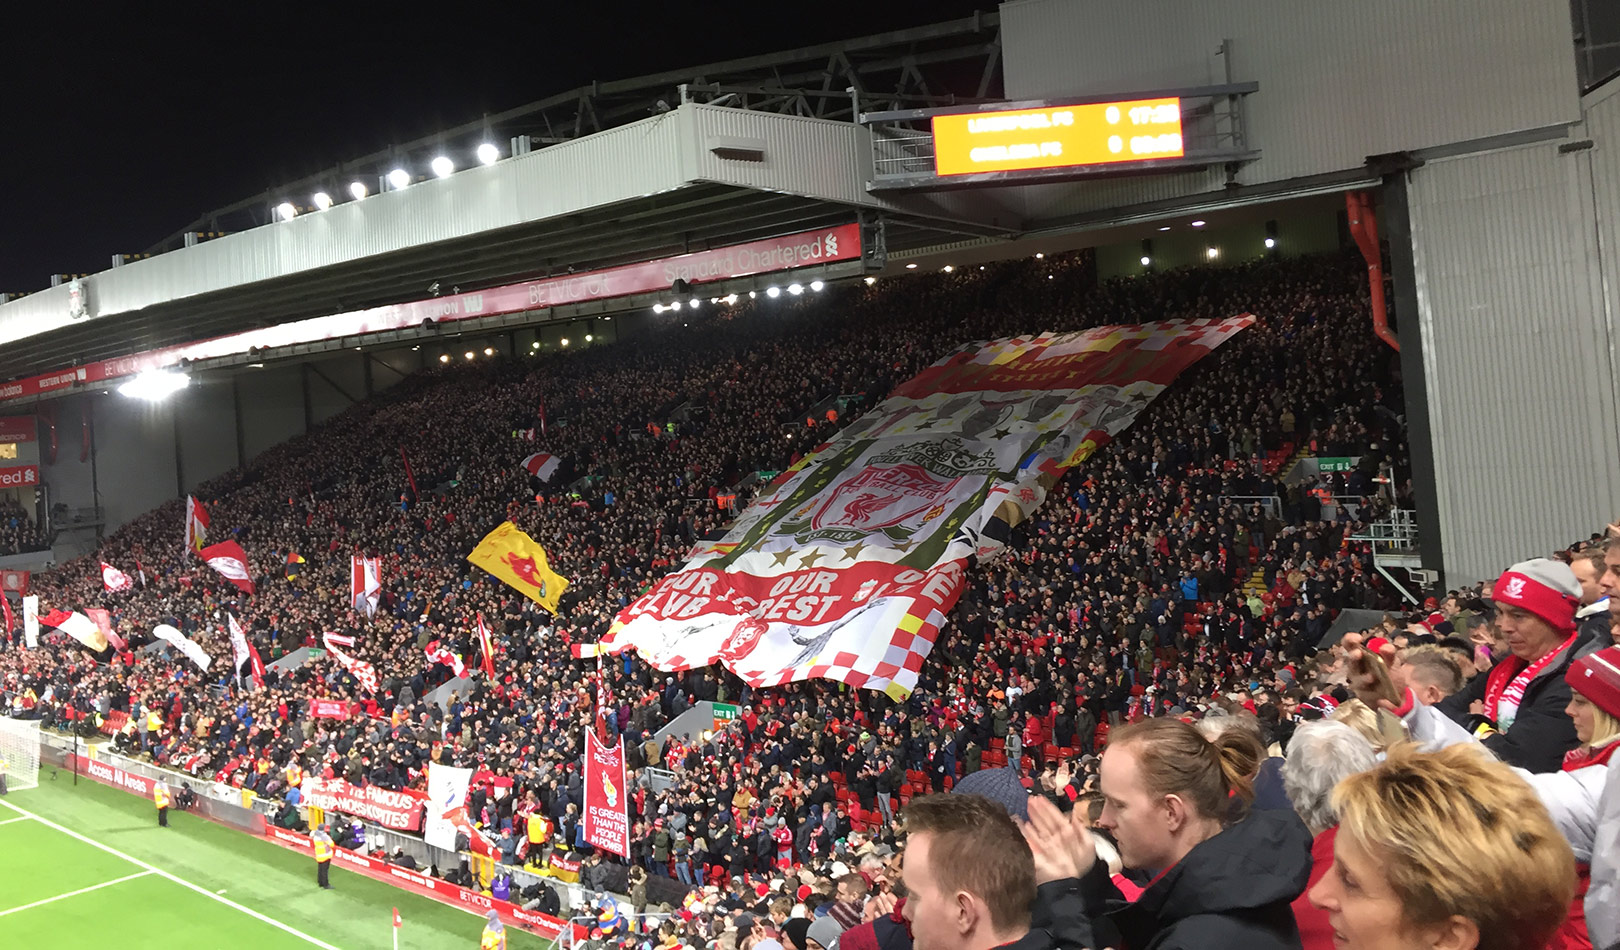 Supportere inne på Anfield stadion Liverpool.